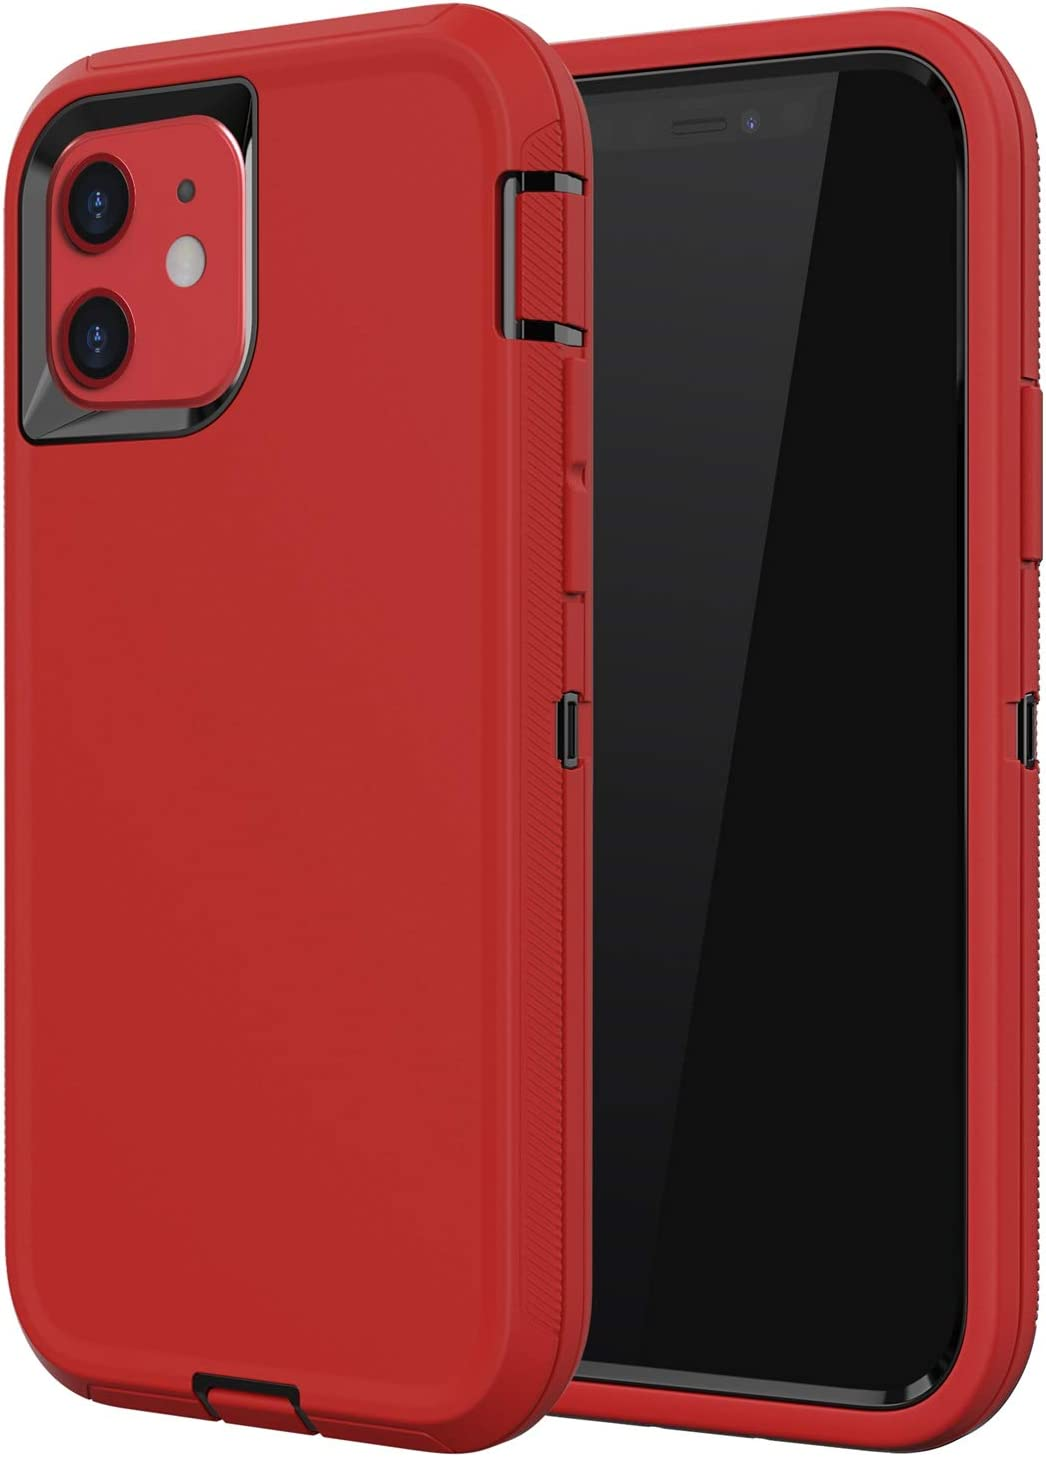 Diverbox Compatible with iPhone 11 Case, [Shockproof] [Dropproof] [Dust-Proof],Heavy Duty Protection Phone Case Cover for Apple iPhone 11 (Red & Black)